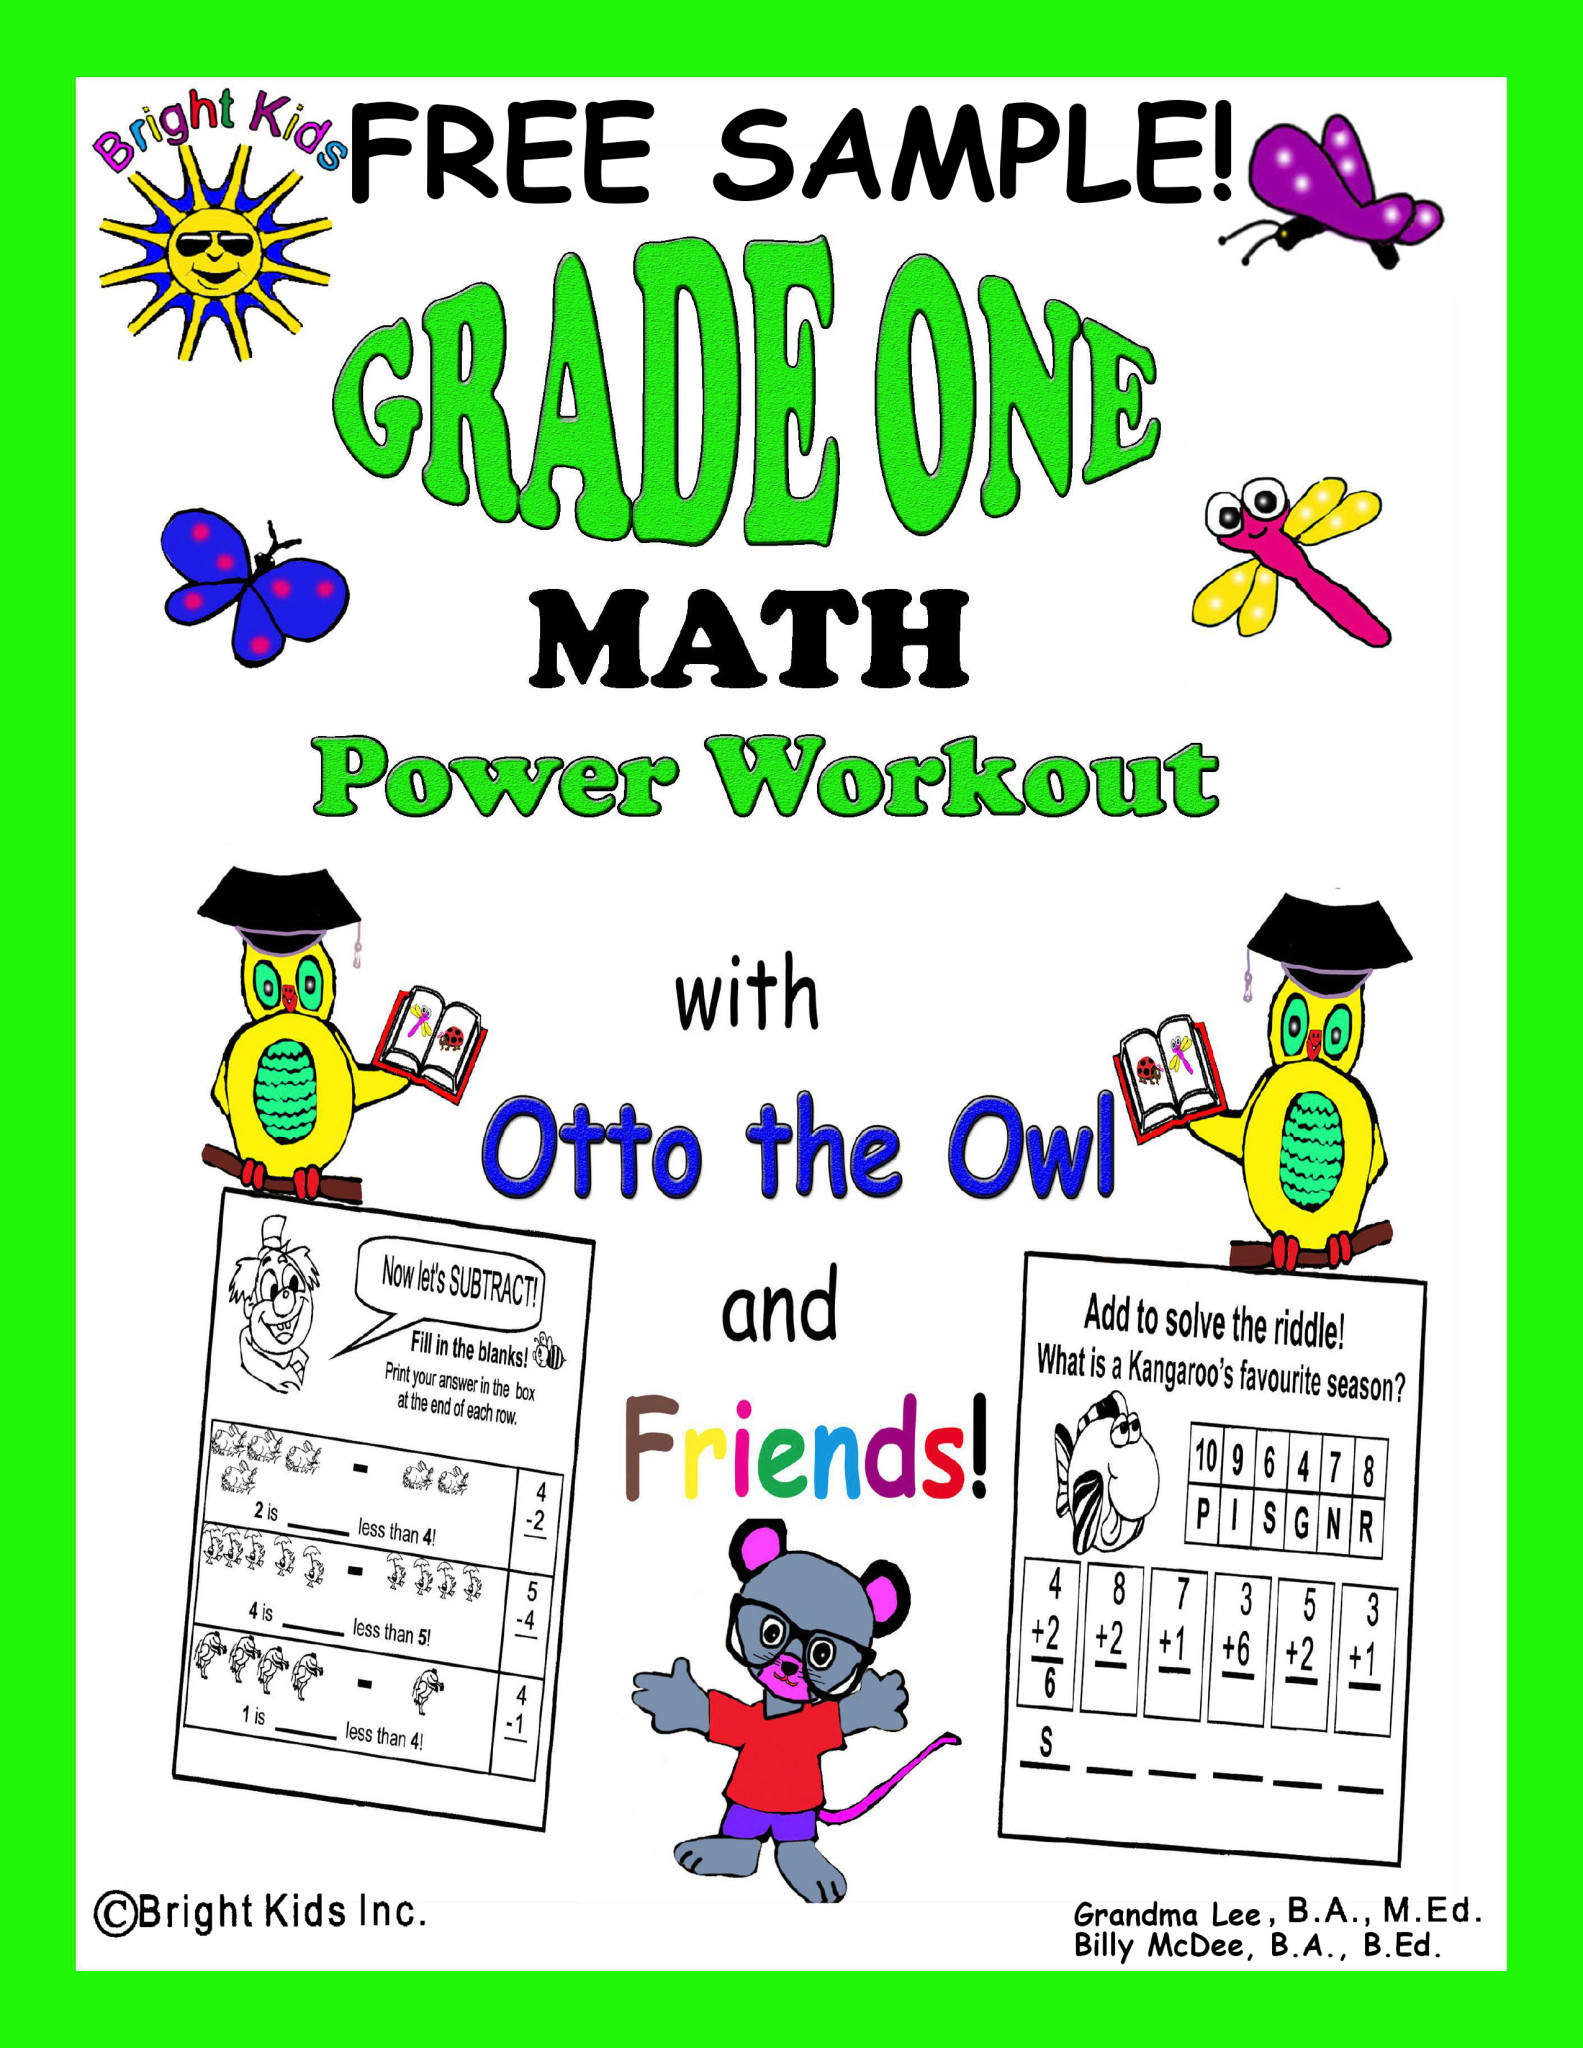 Grade 1 Math Power Workout